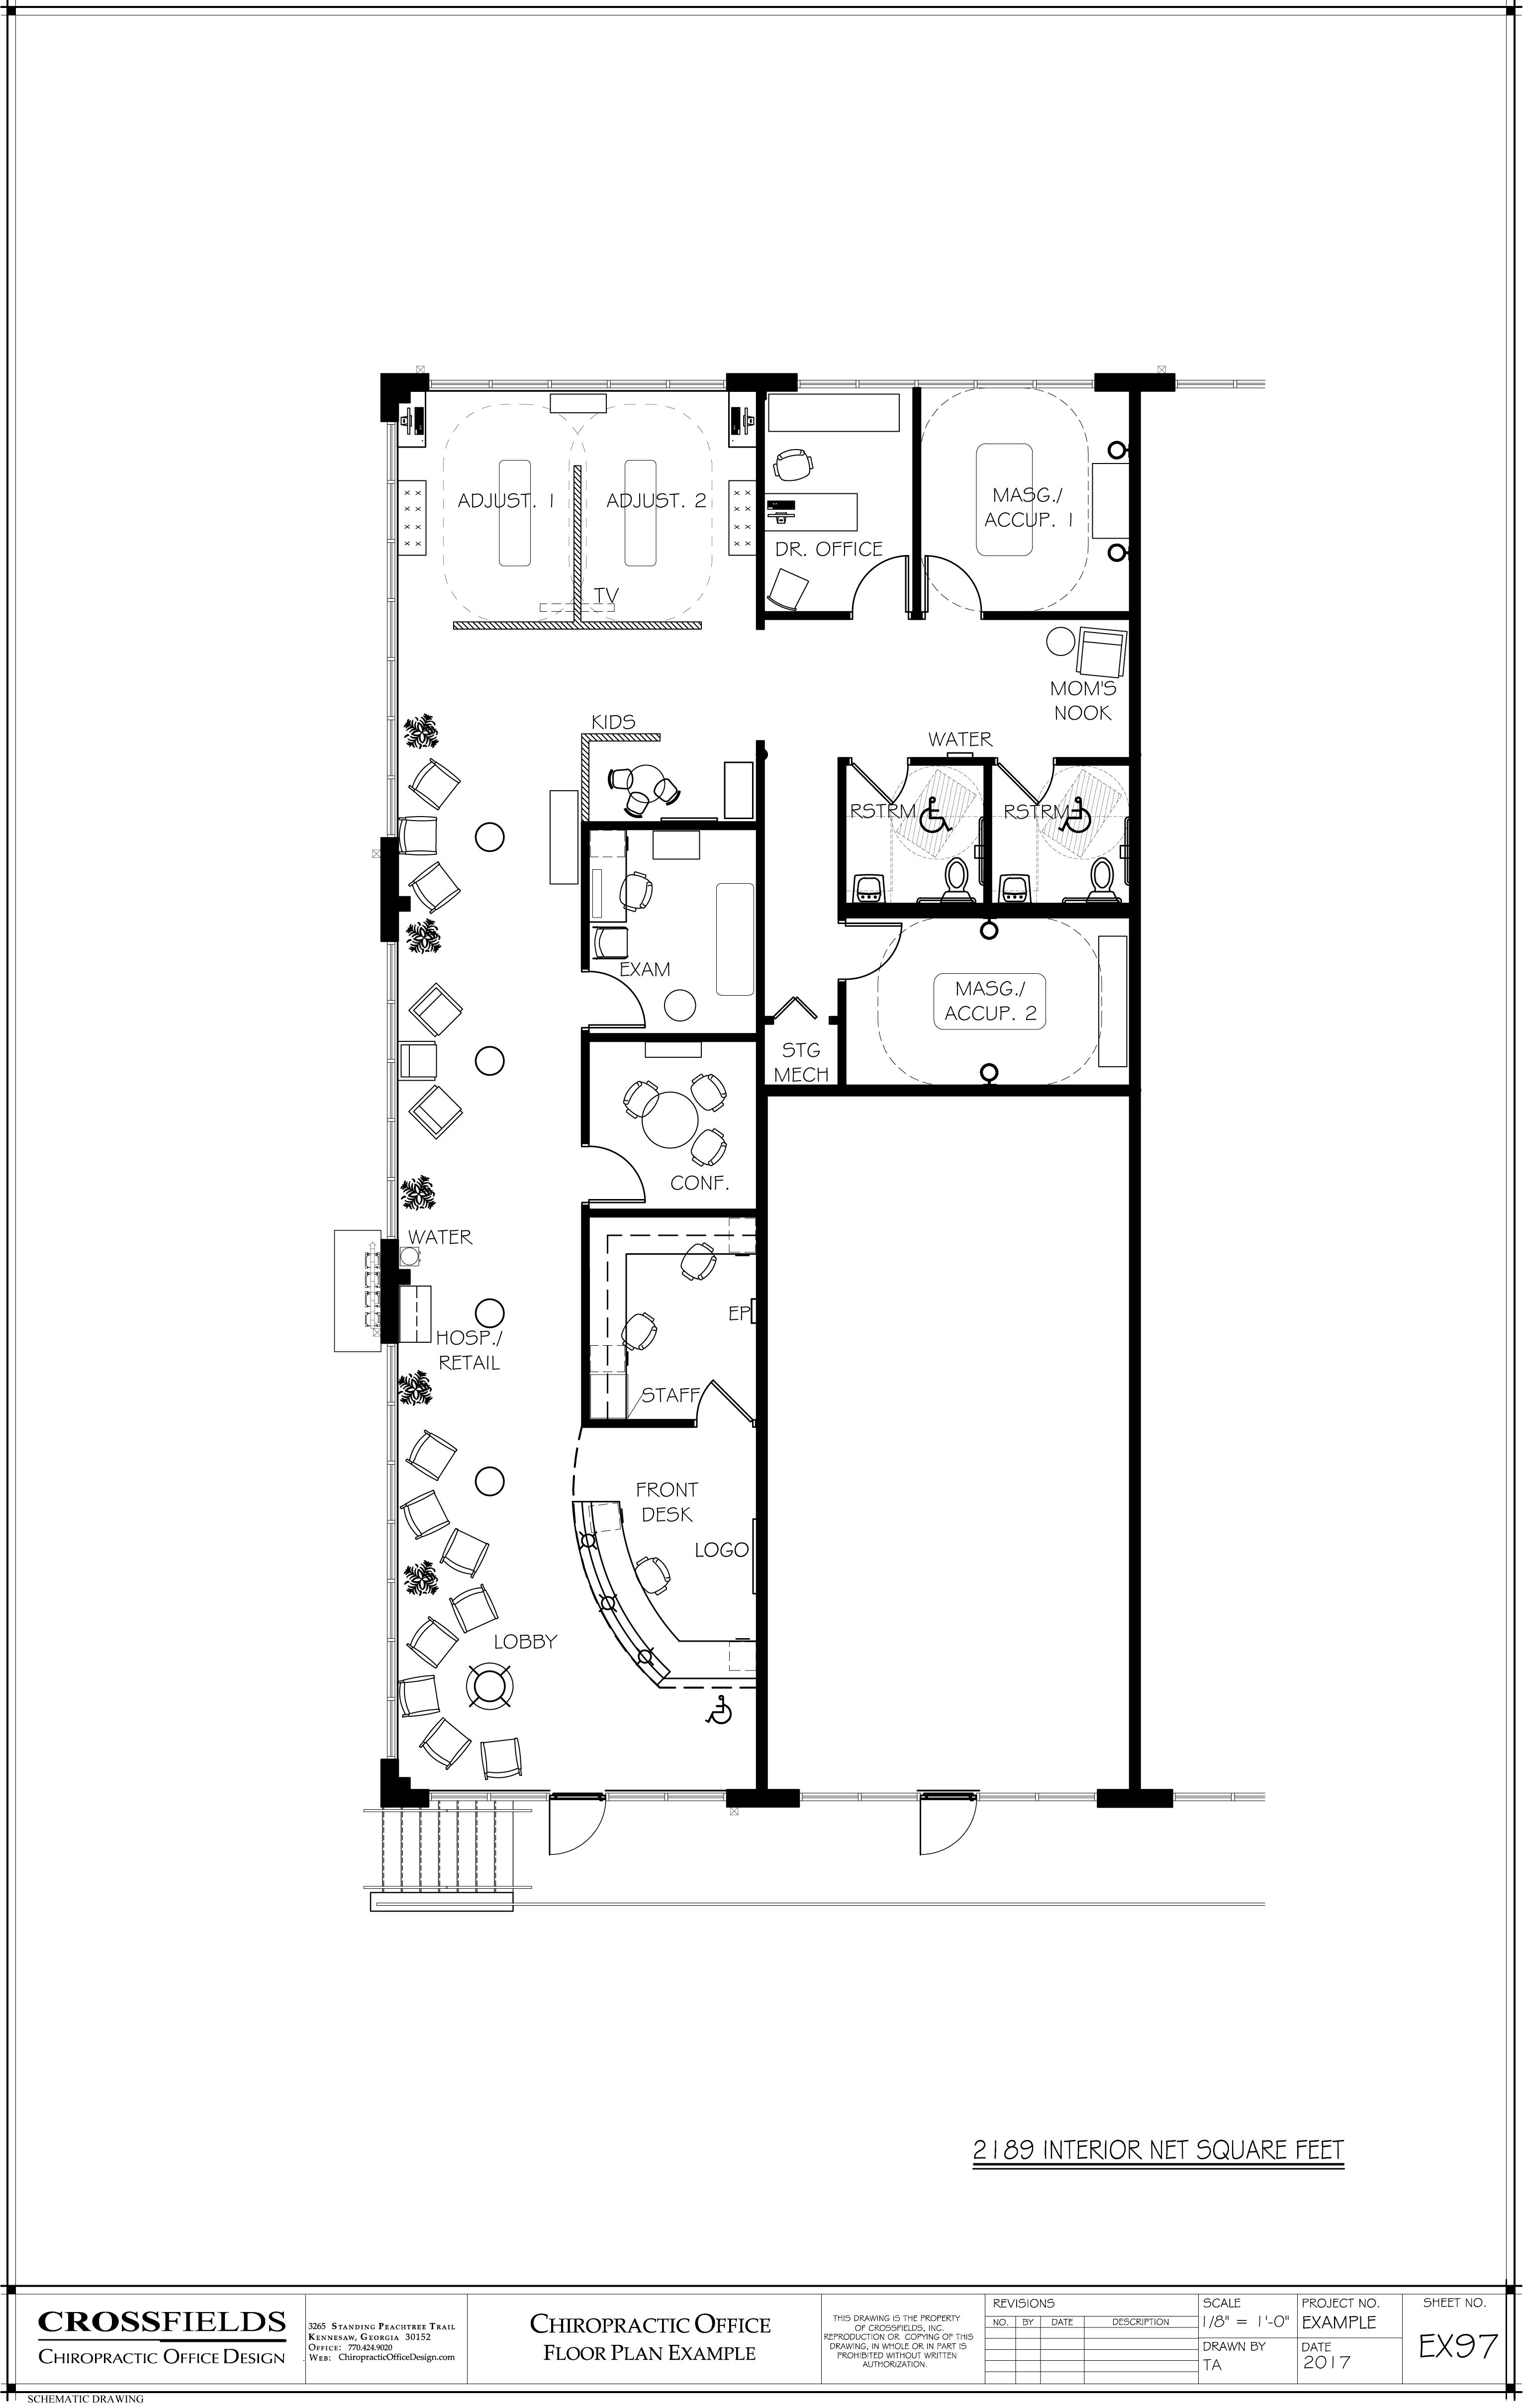 Superieur Layout Floor Plan Example Of A Chiropractic Office With A Semi Open  Adjusting Exam Conference Massage Acupuncture 2189 Interior Net Sq. Ft.